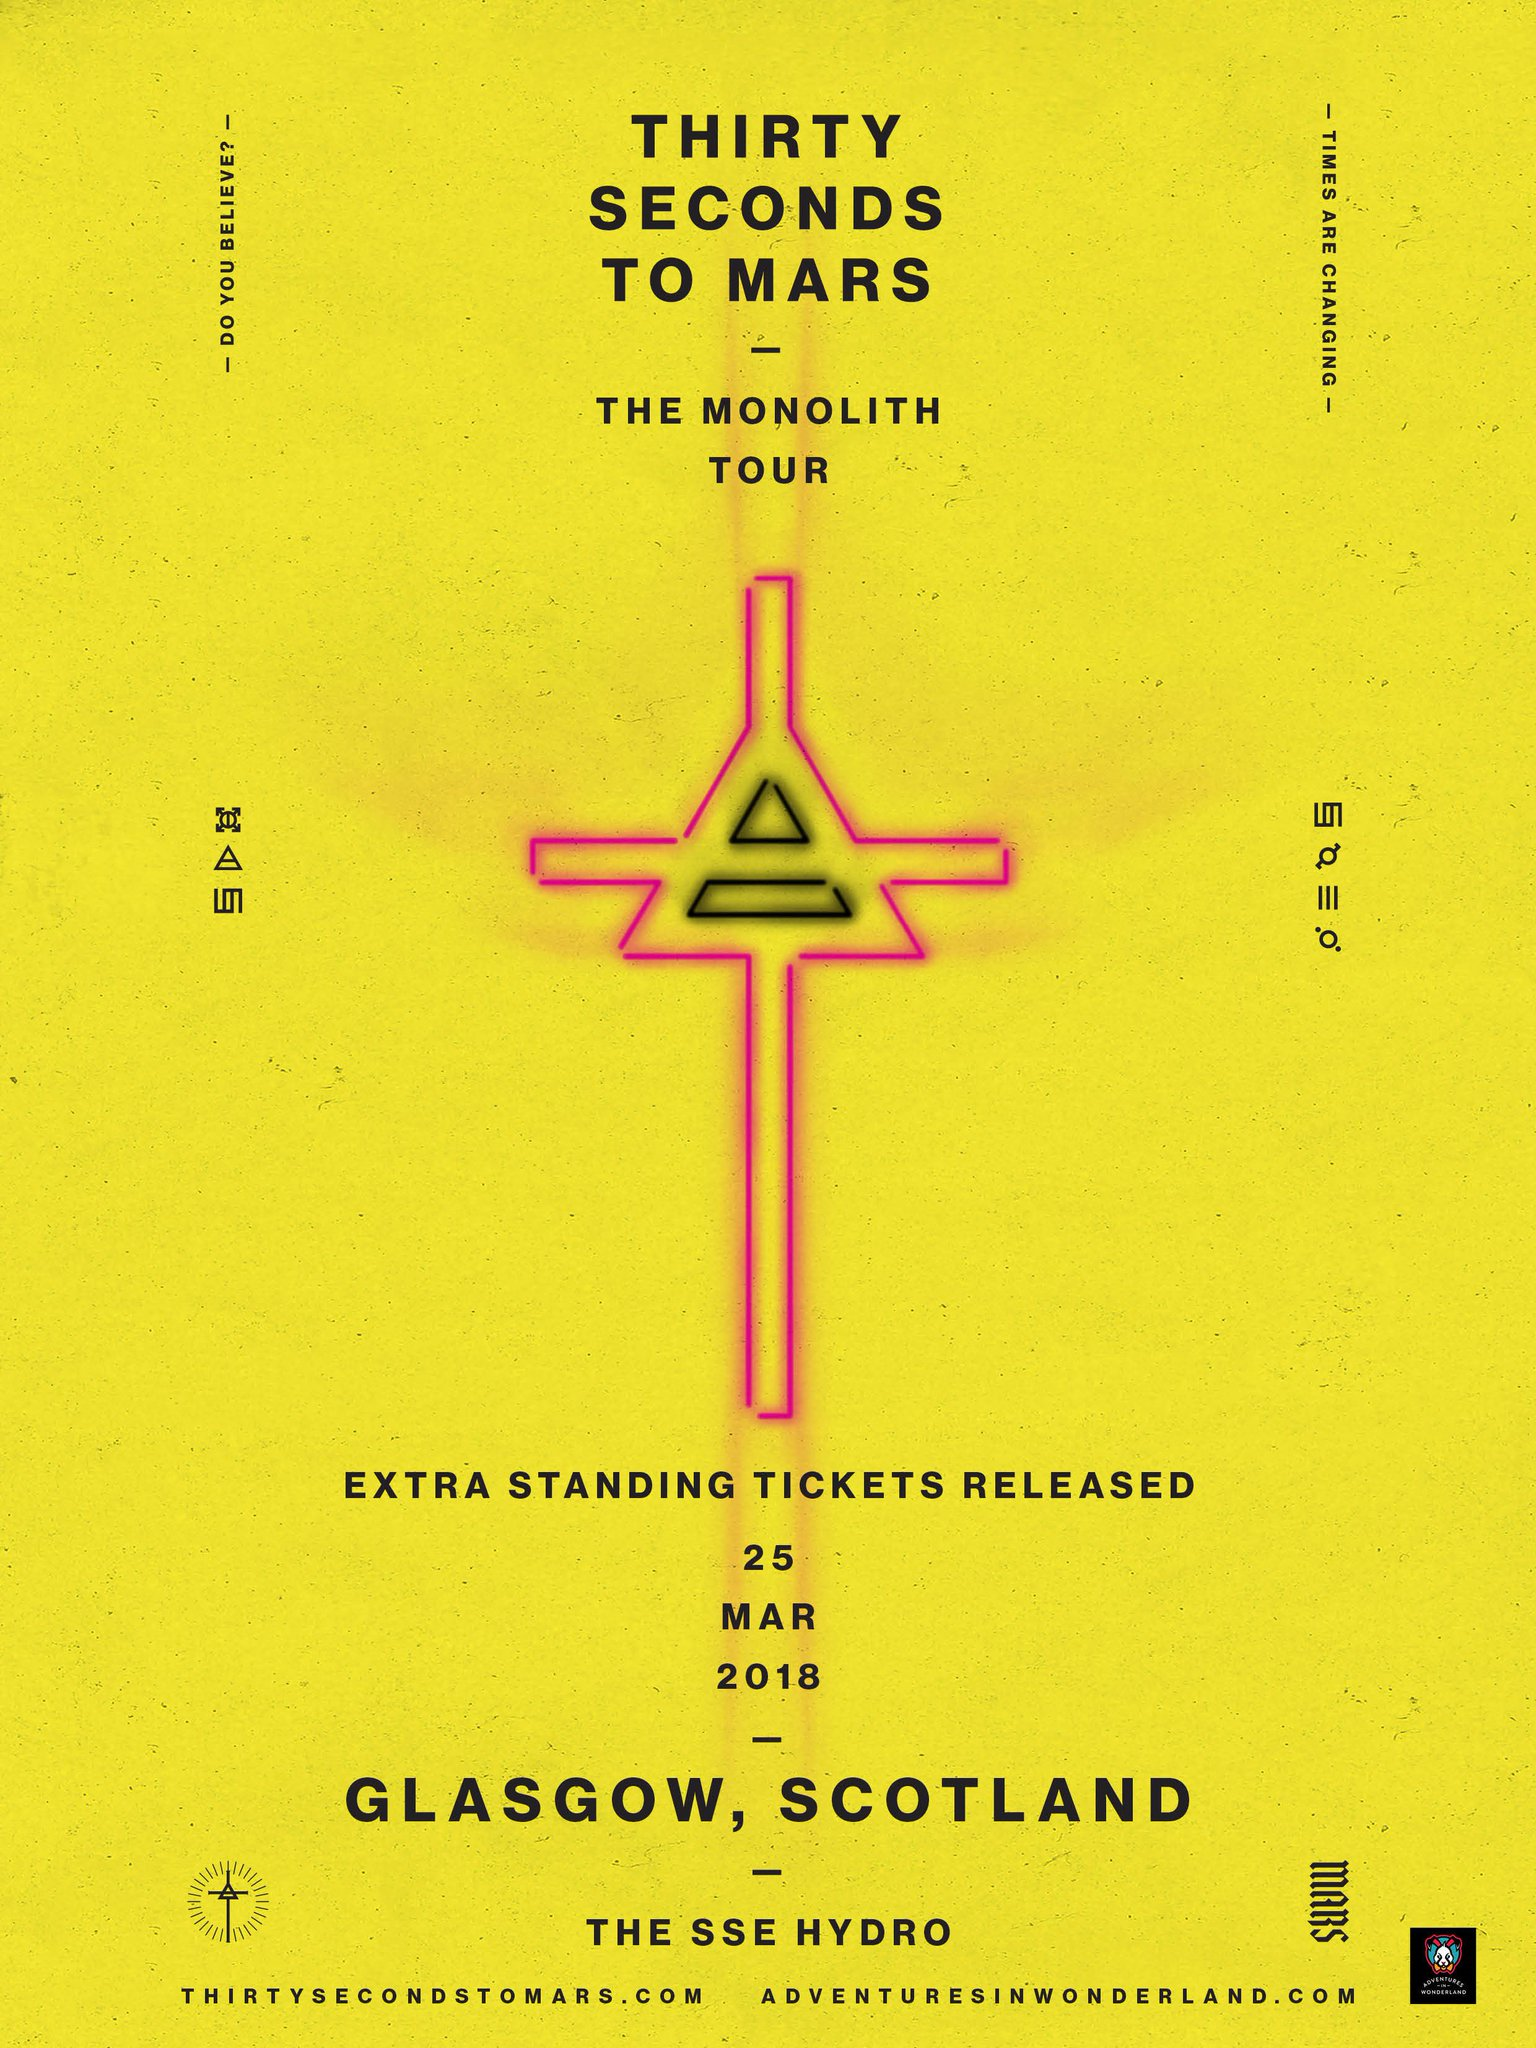 GLASGOW.. NEW STANDING TIX just released for MARCH 25!! Get 'em while you can: https://t.co/66u3gtQPSA https://t.co/UYkwMXfKBX